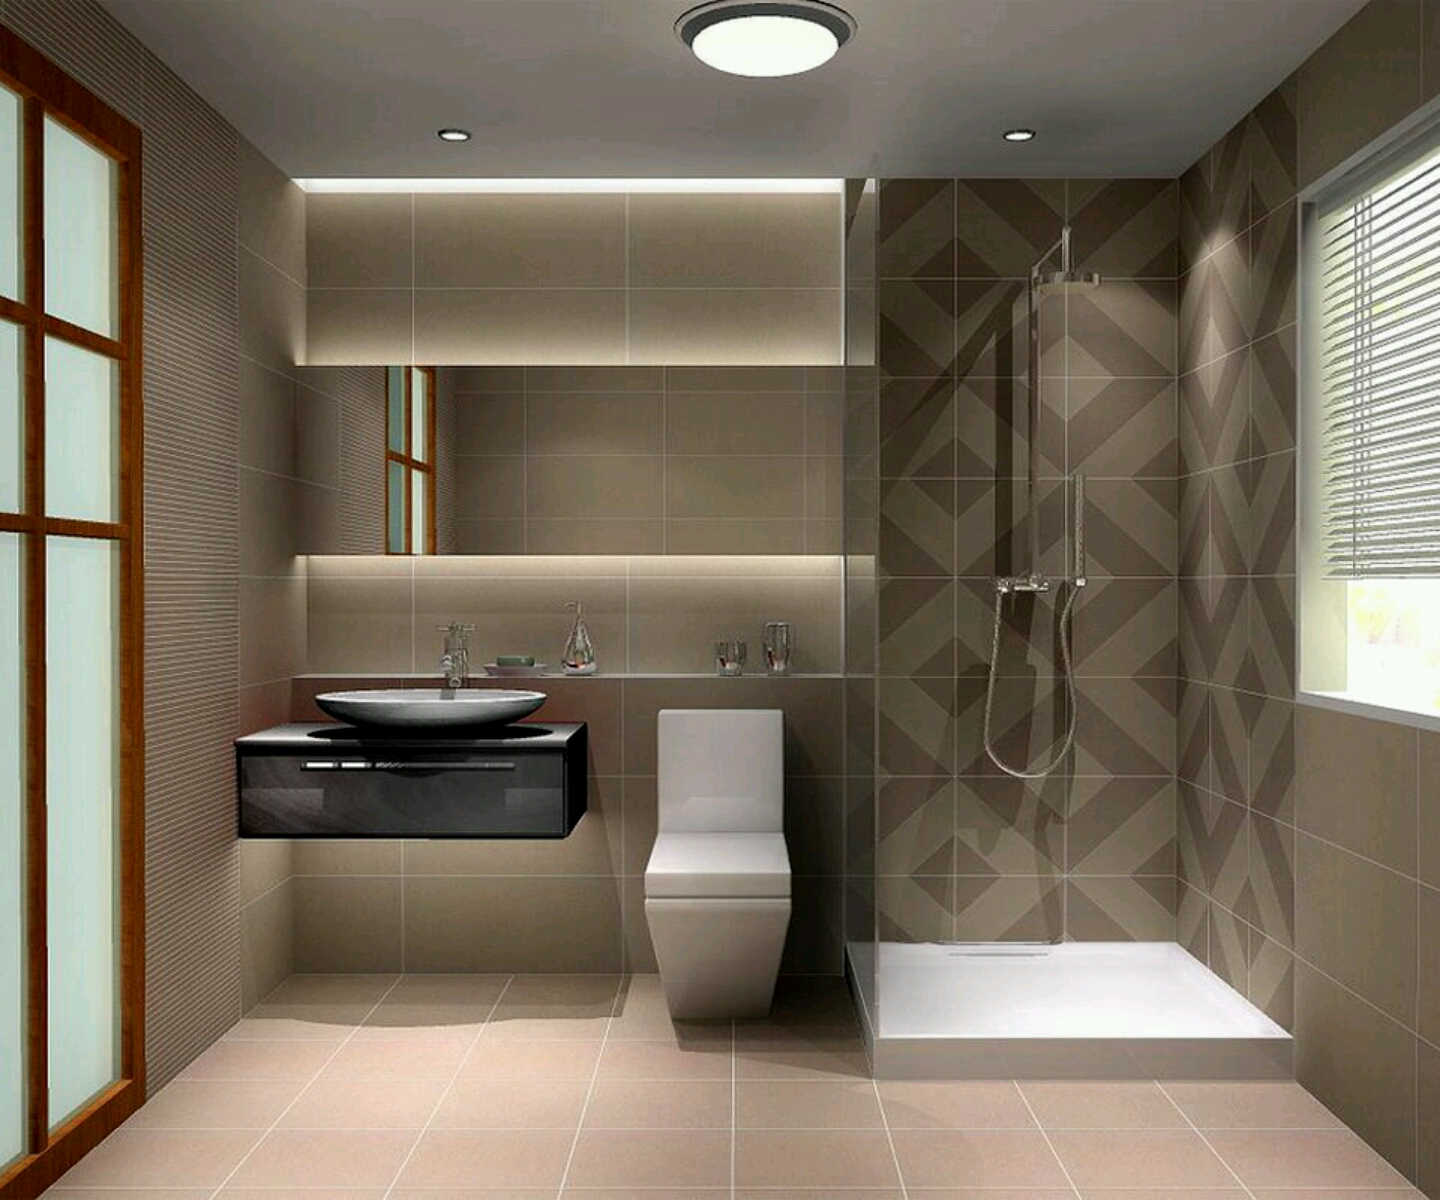 Small modern bathroom design 2017 grasscloth wallpaper for Bathroom design small